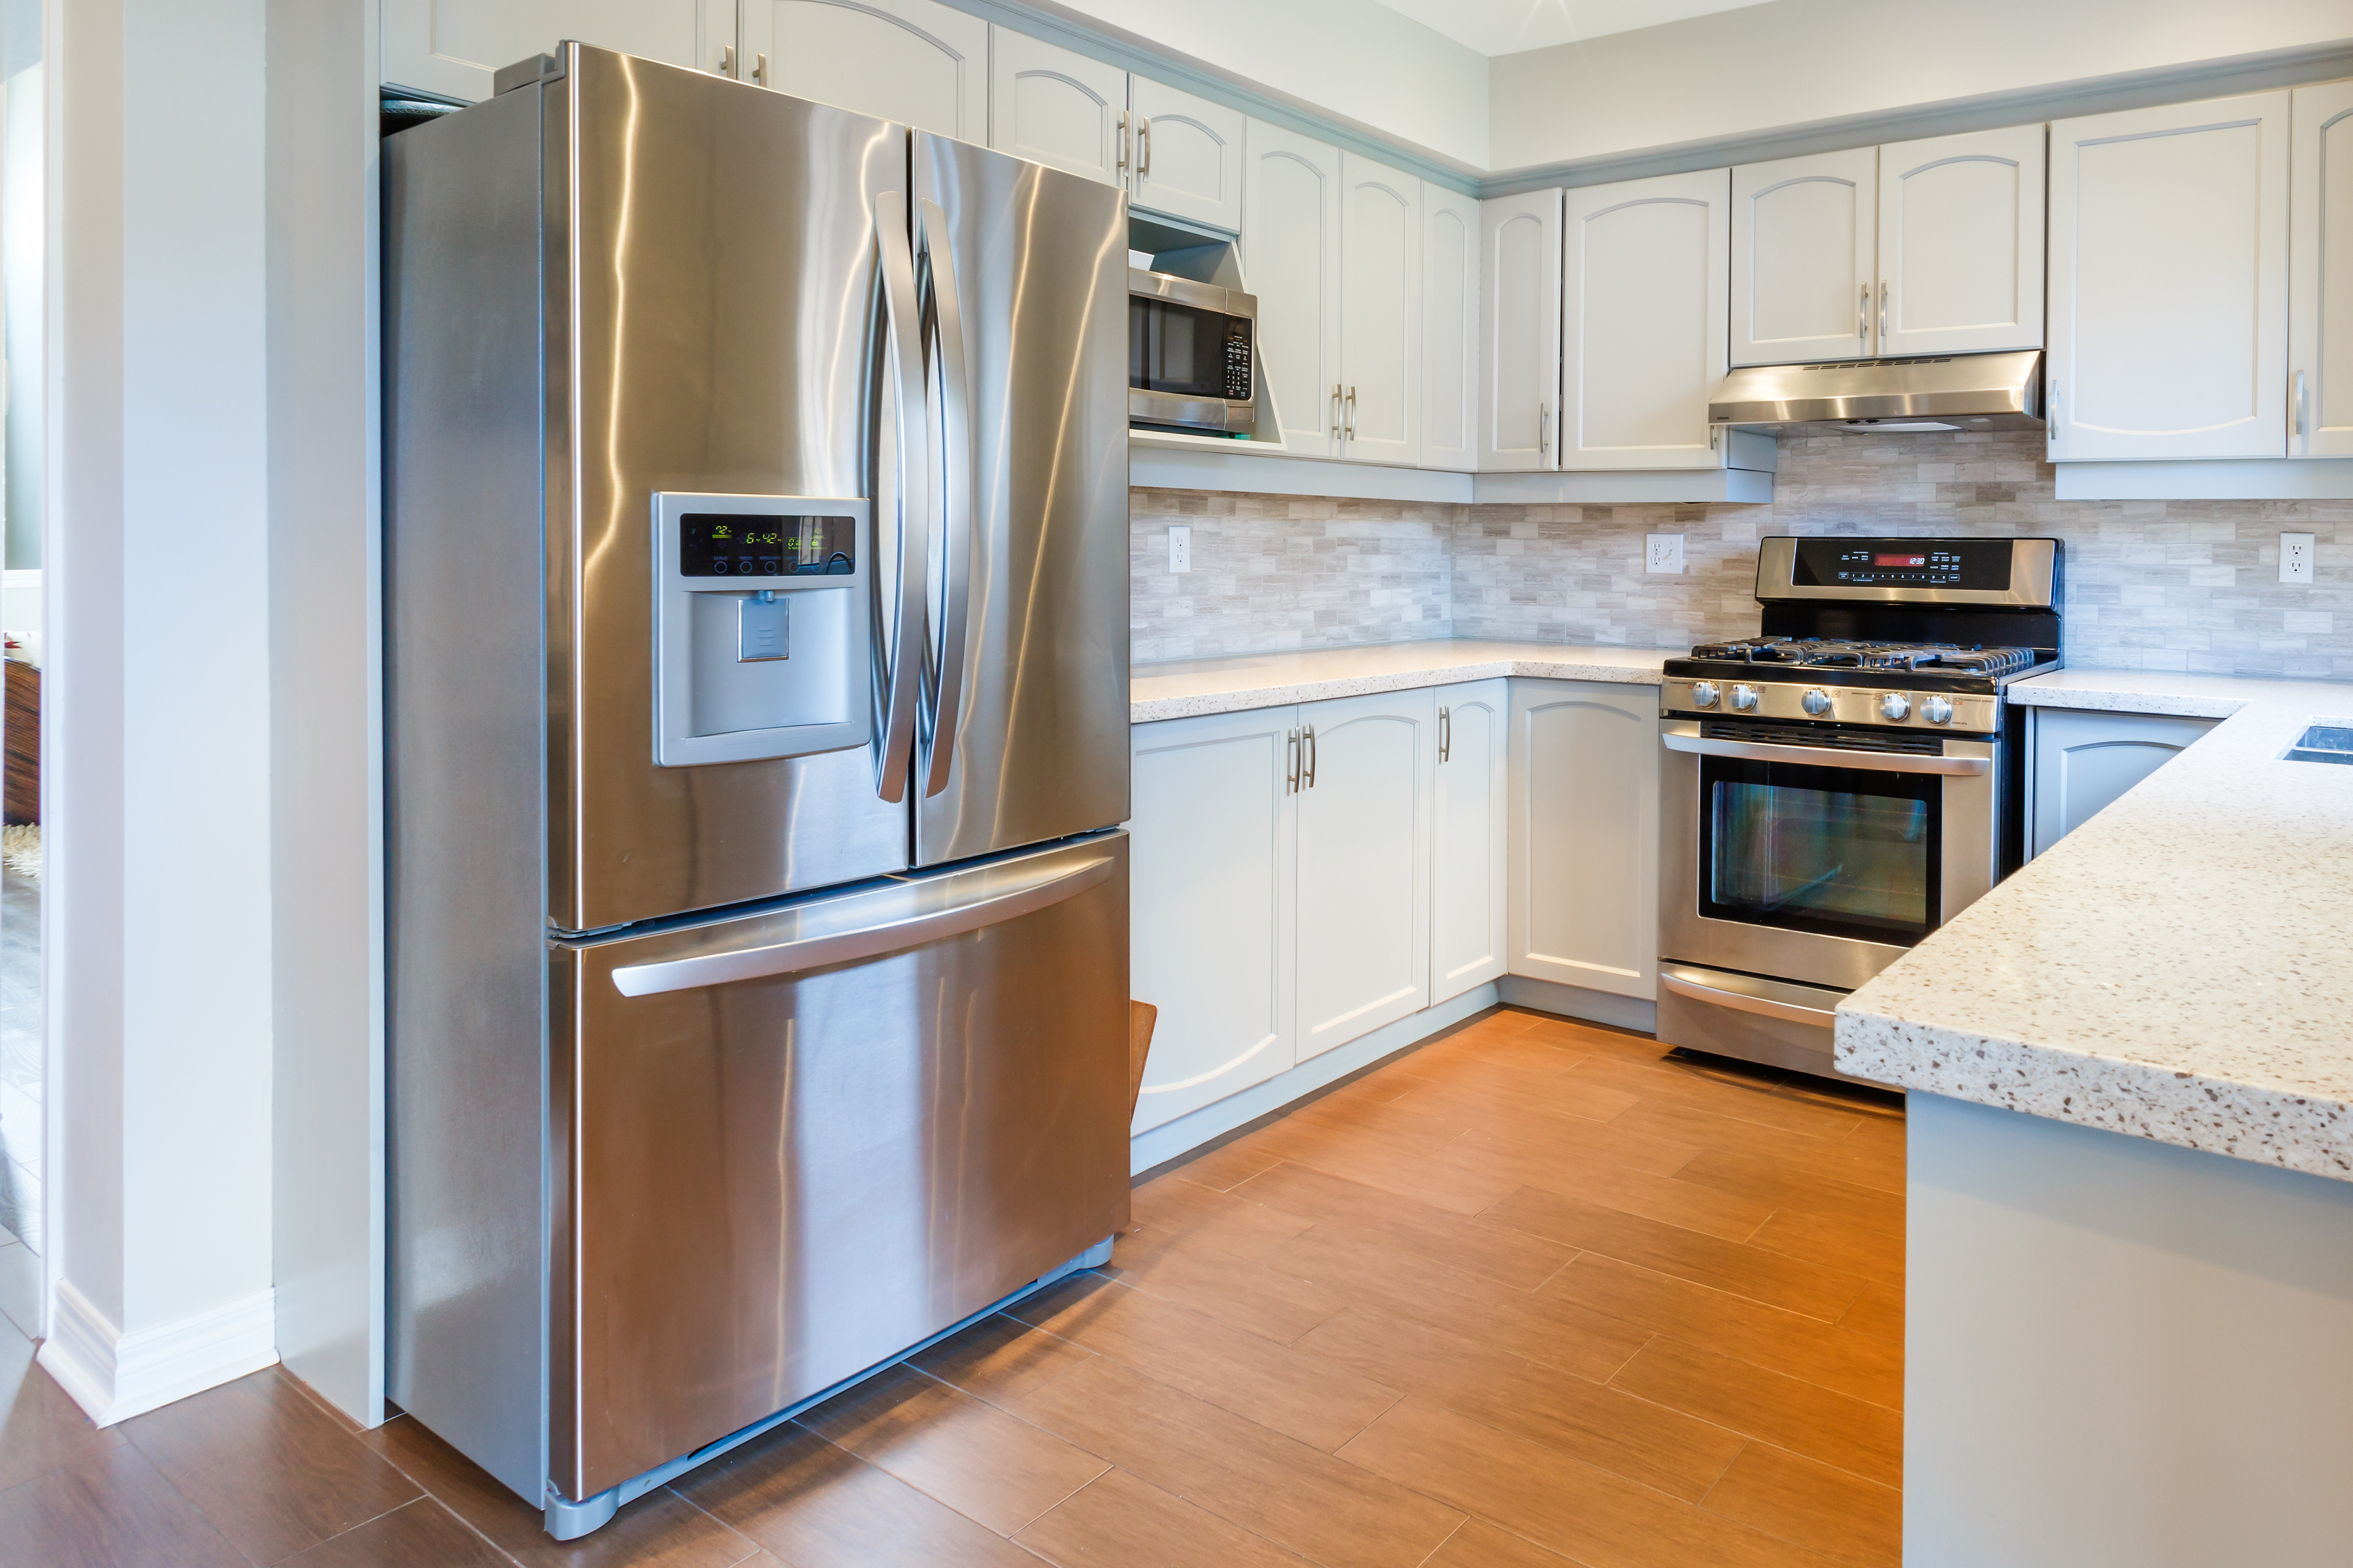 Refrigerator in home kitchen stops cooling.